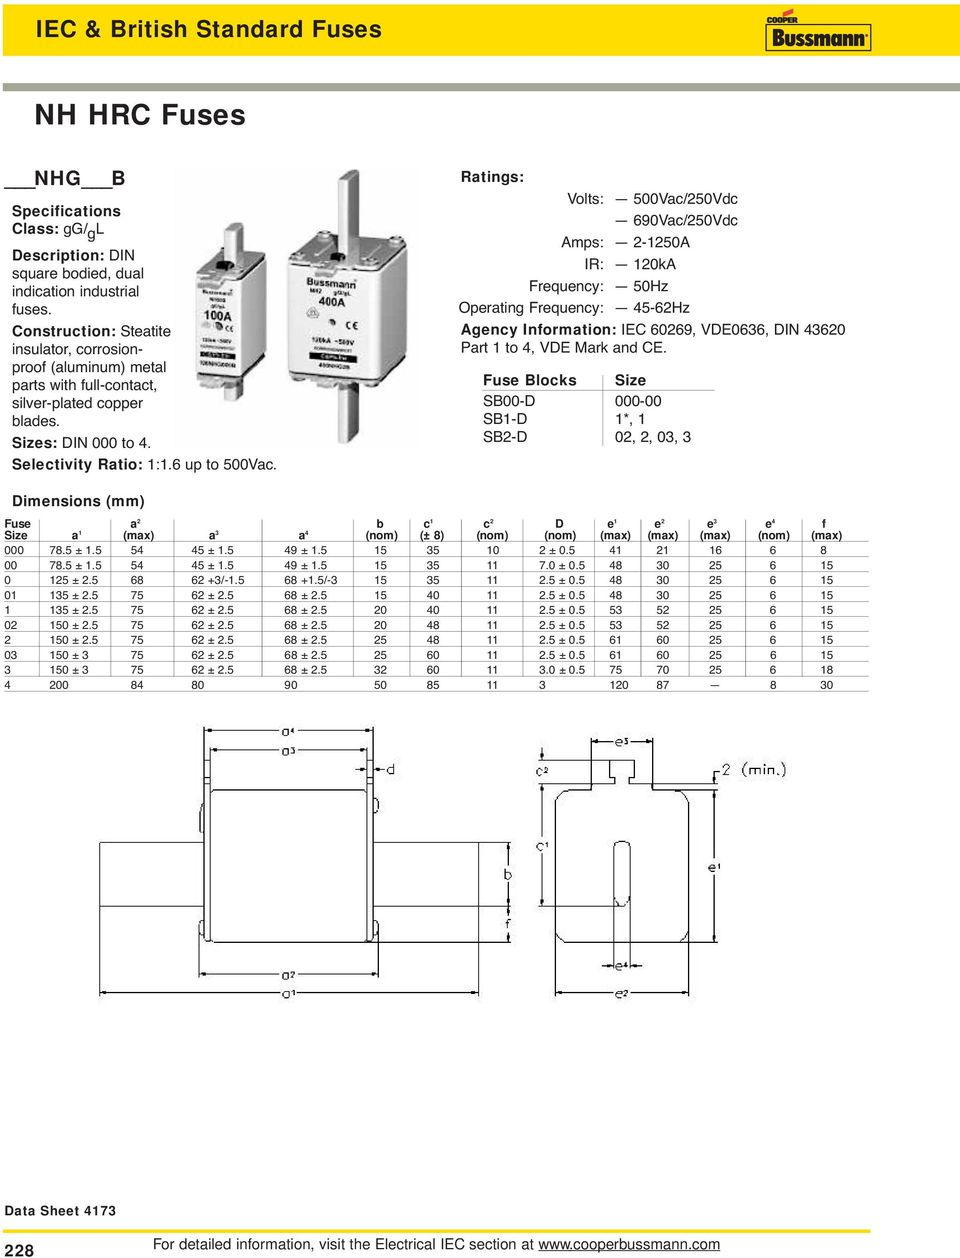 Iec And British Standard Fuses Pdf Fuse With Switch Wiring Diagram Volts 500vac 50vdc 690vac Amps 50a Ir 0ka Frequency